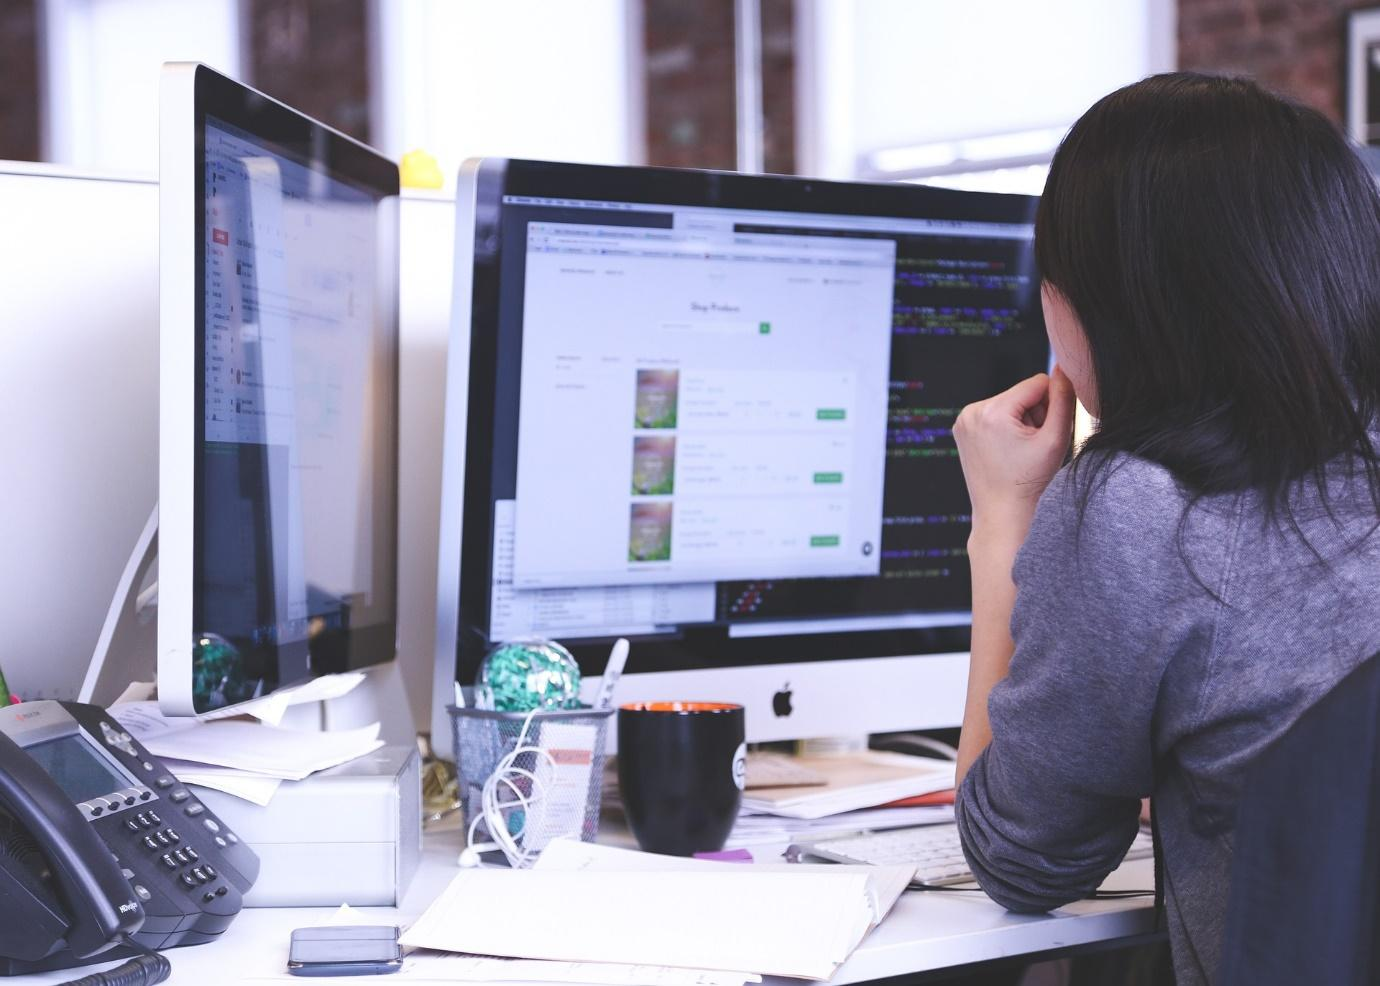 A person sitting at a desk looking at a computer screen  Description automatically generated with low confidence